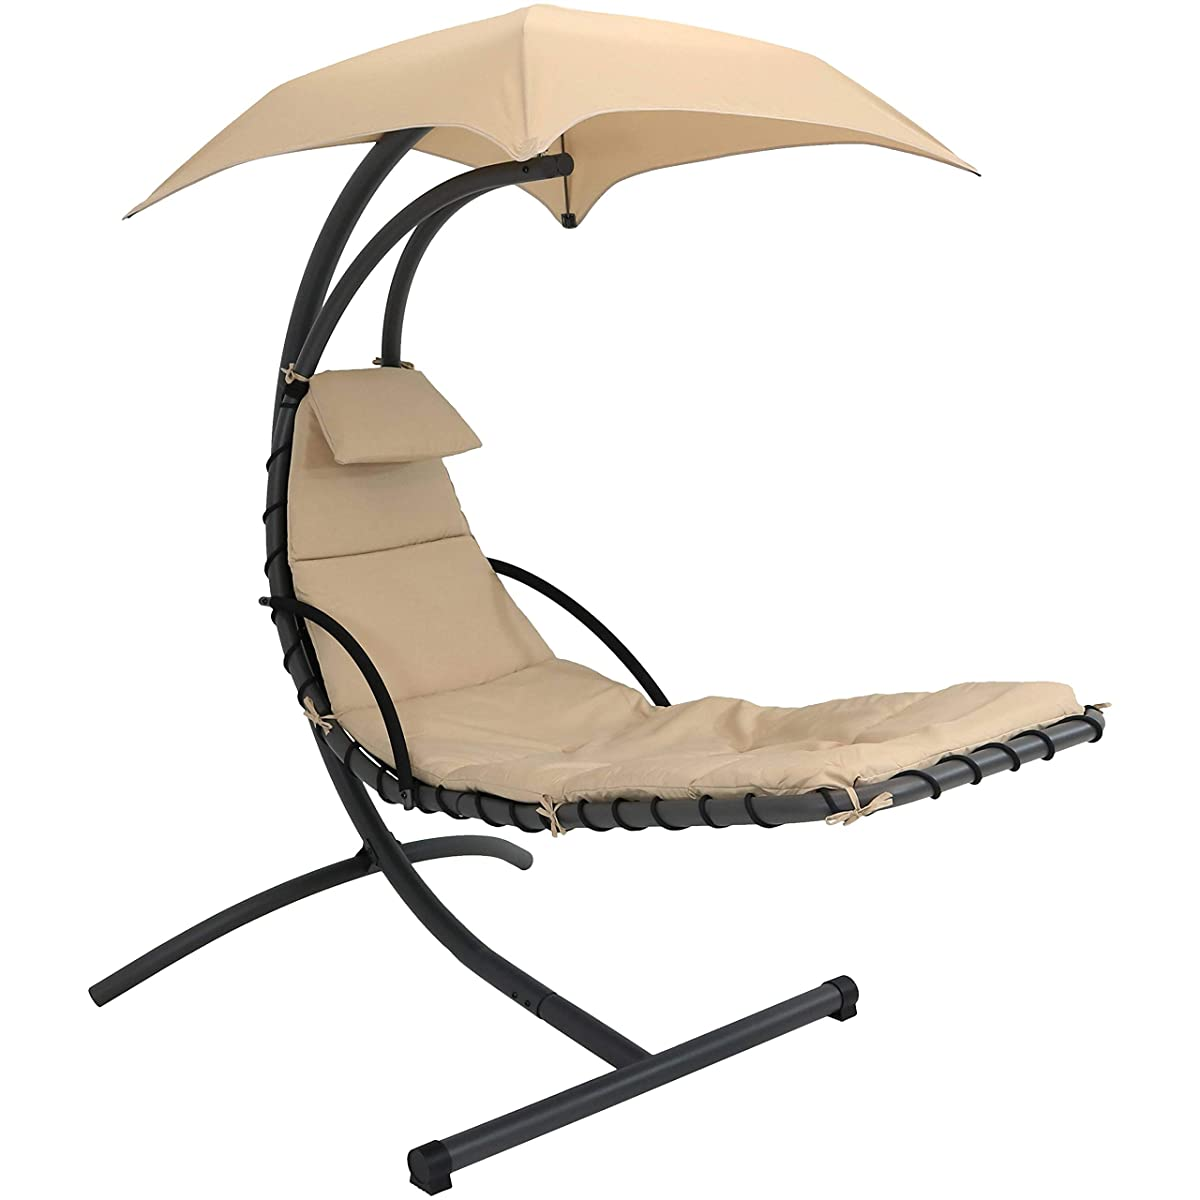 Sunnydaze Floating Chaise Lounger Swing Chair with Canopy, 79 Inch Long, Beige, 260 Pound Capacity